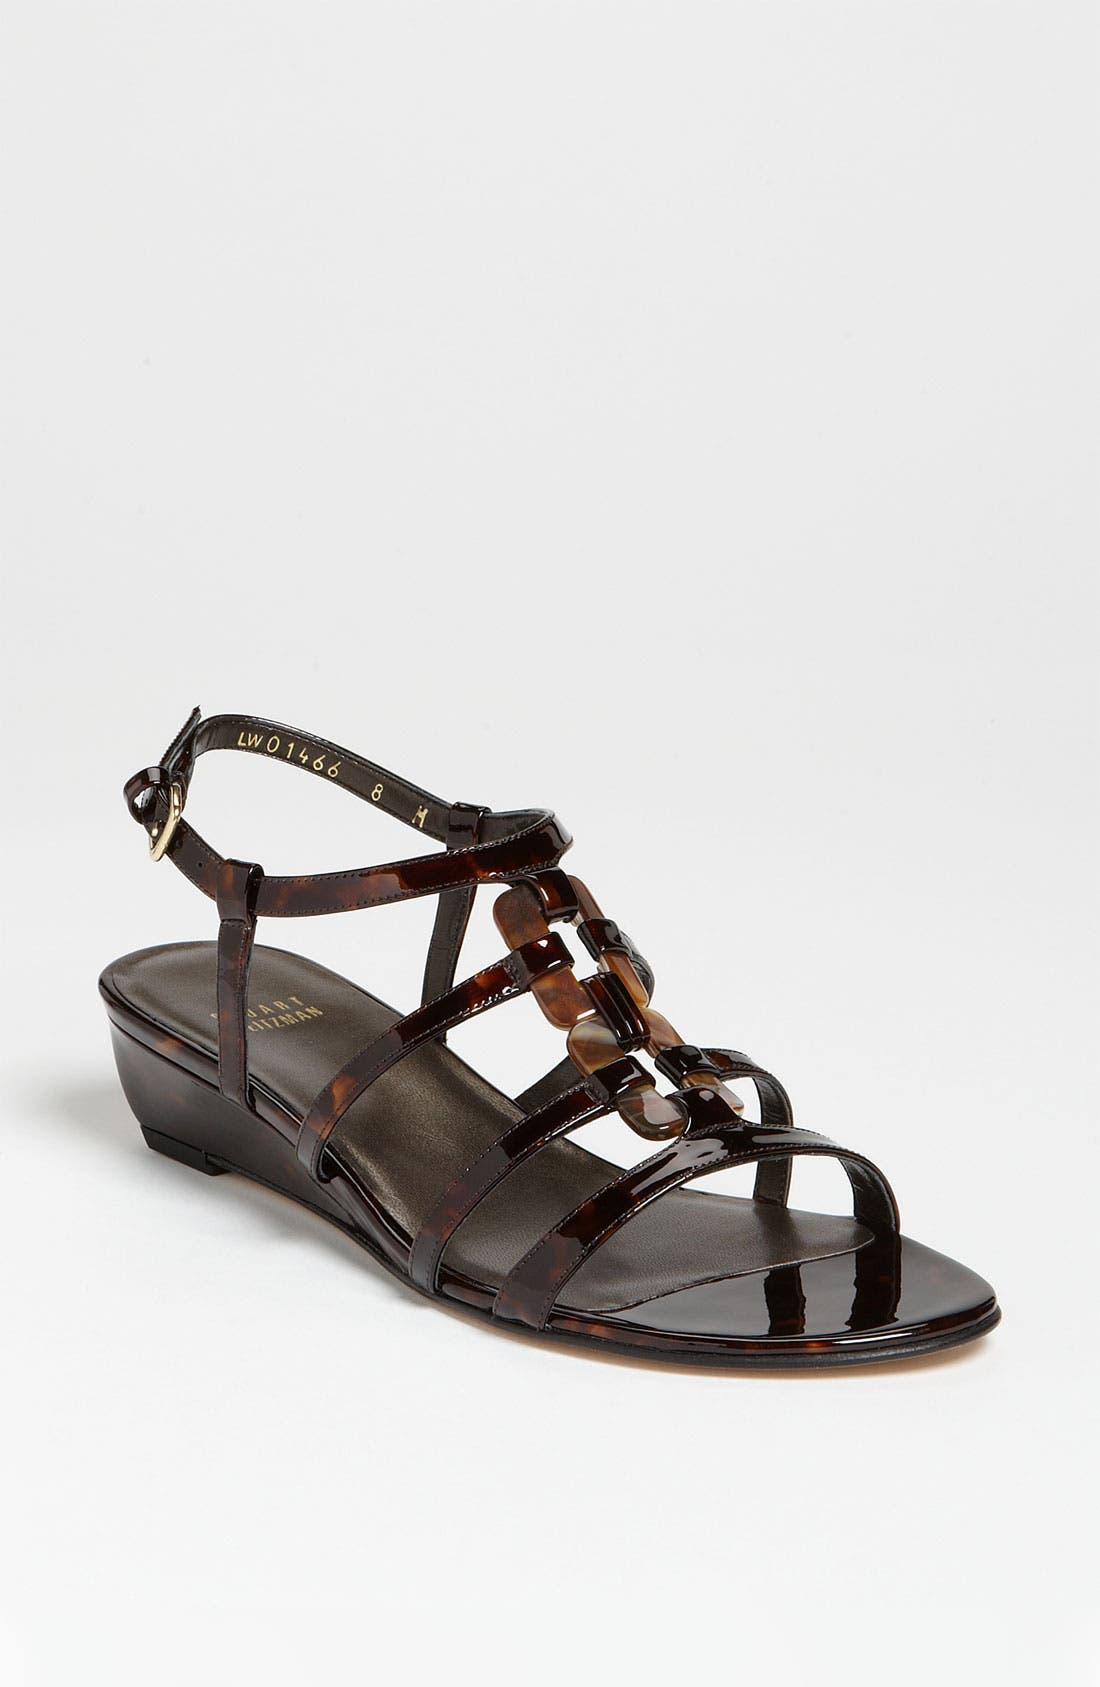 Alternate Image 1 Selected - Stuart Weitzman 'Keywest' Sandal